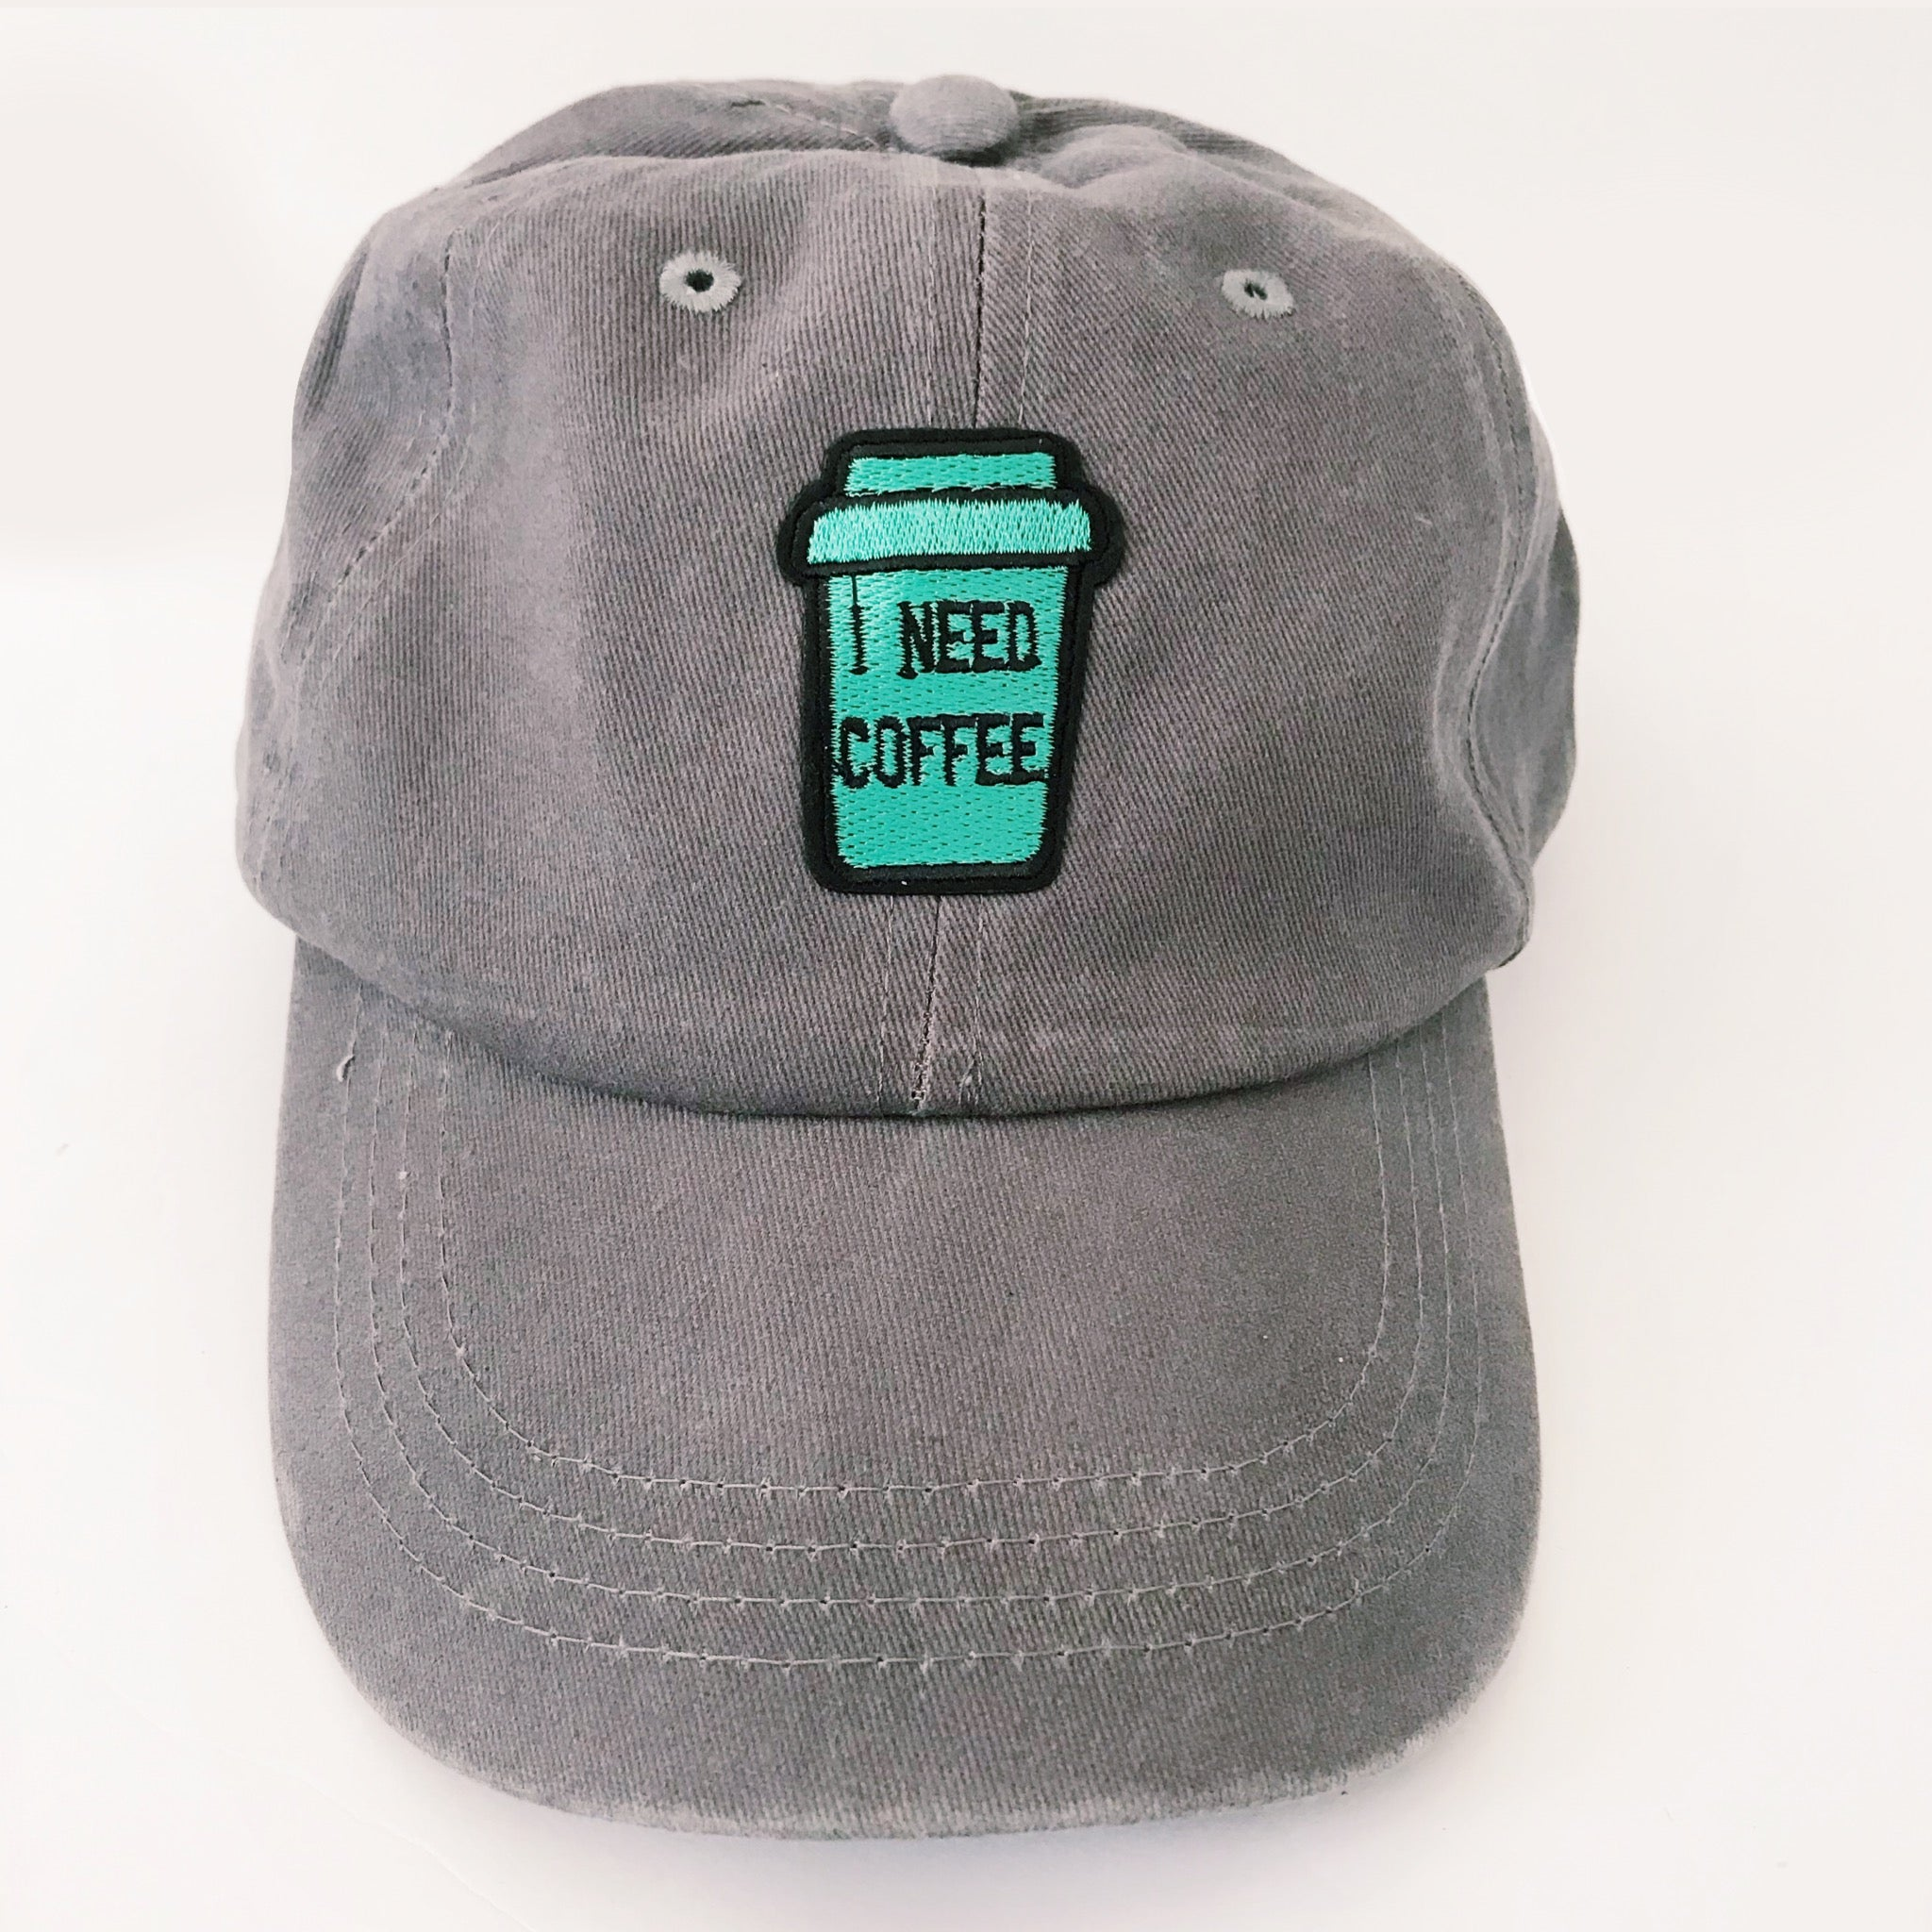 I Need Coffee Embroidered Baseball Cap